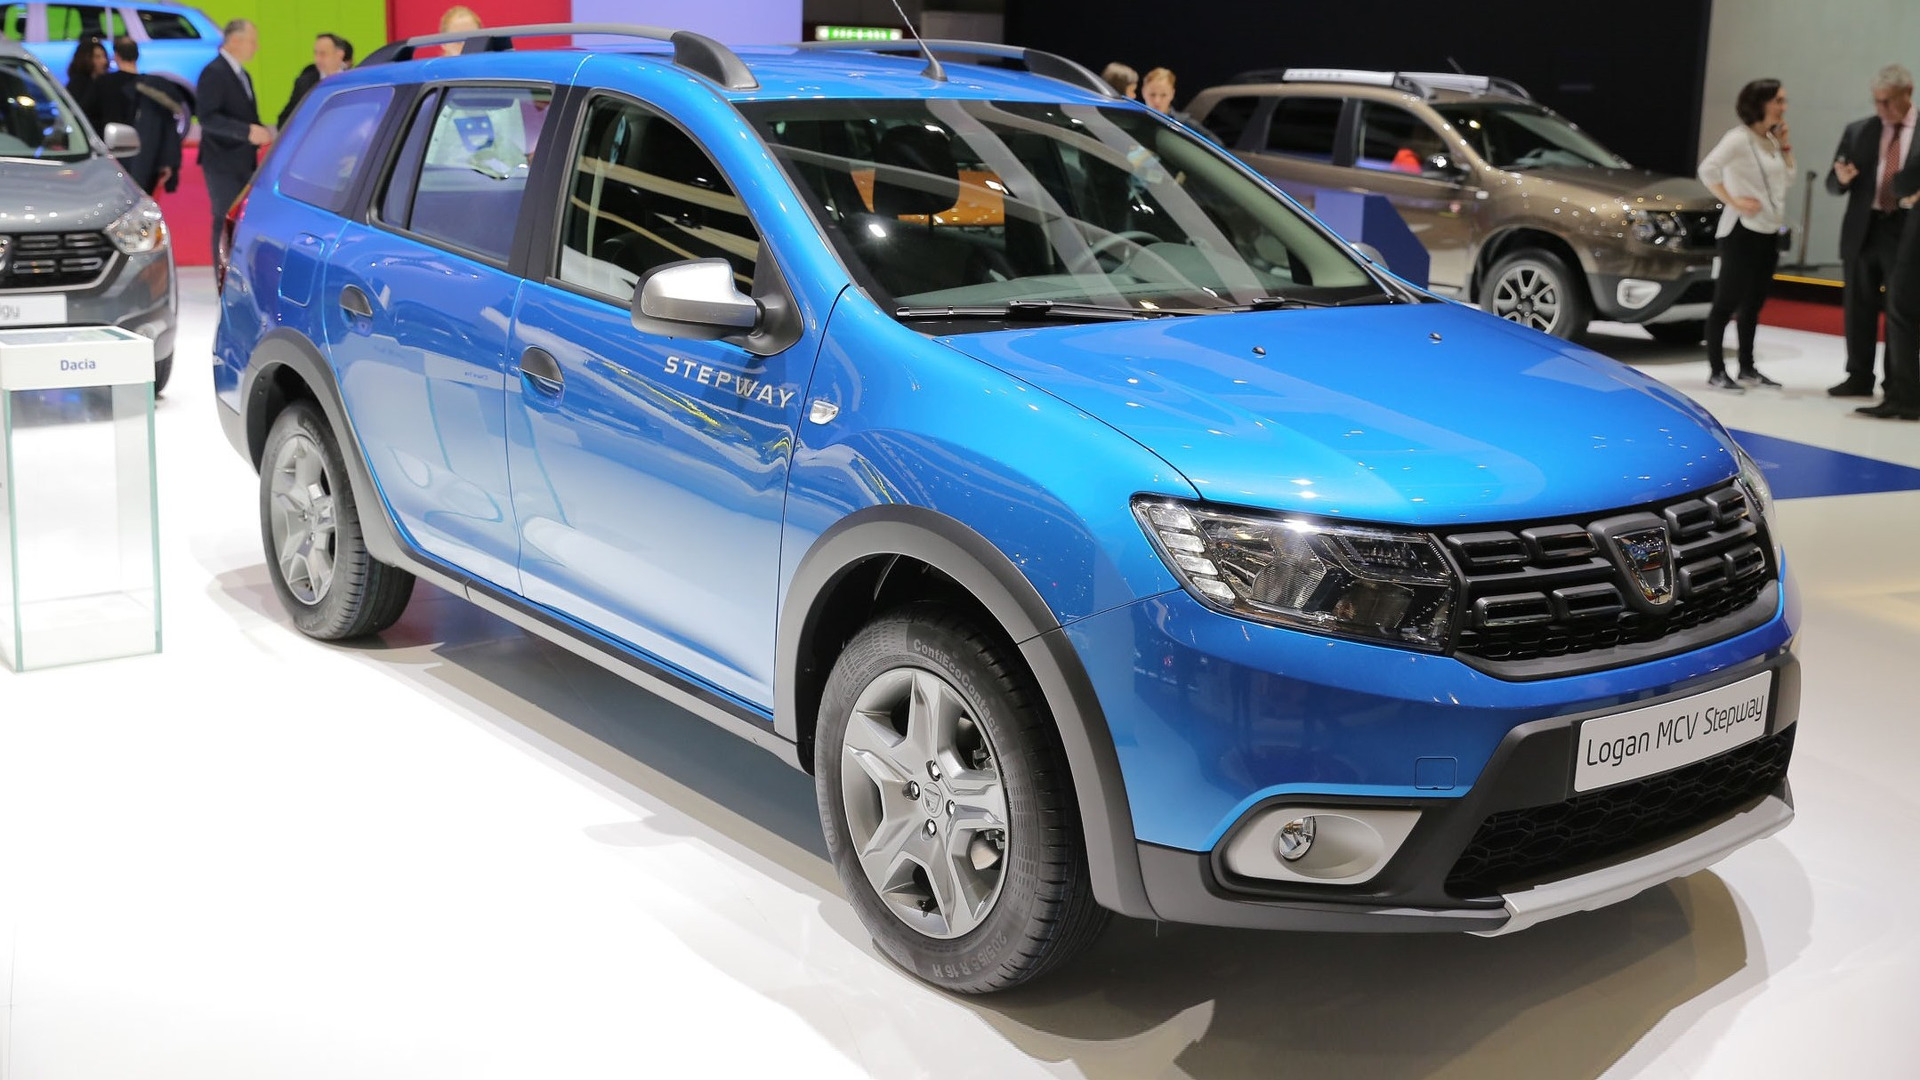 logan mcv stepway is by far dacia 39 s coolest car in geneva. Black Bedroom Furniture Sets. Home Design Ideas